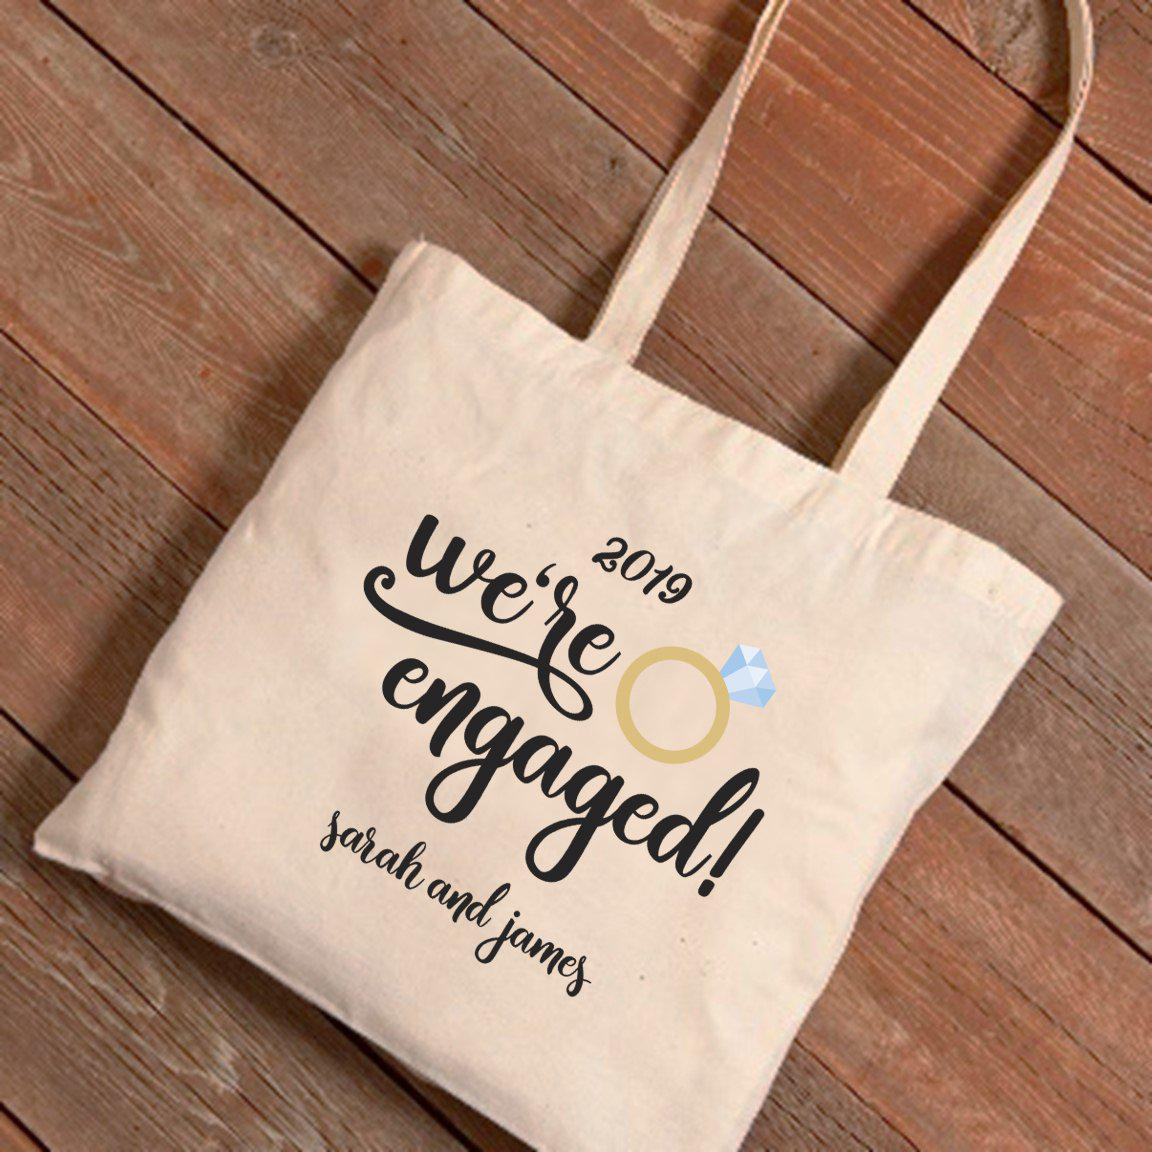 Personalized Tote Bag - We're Engaged